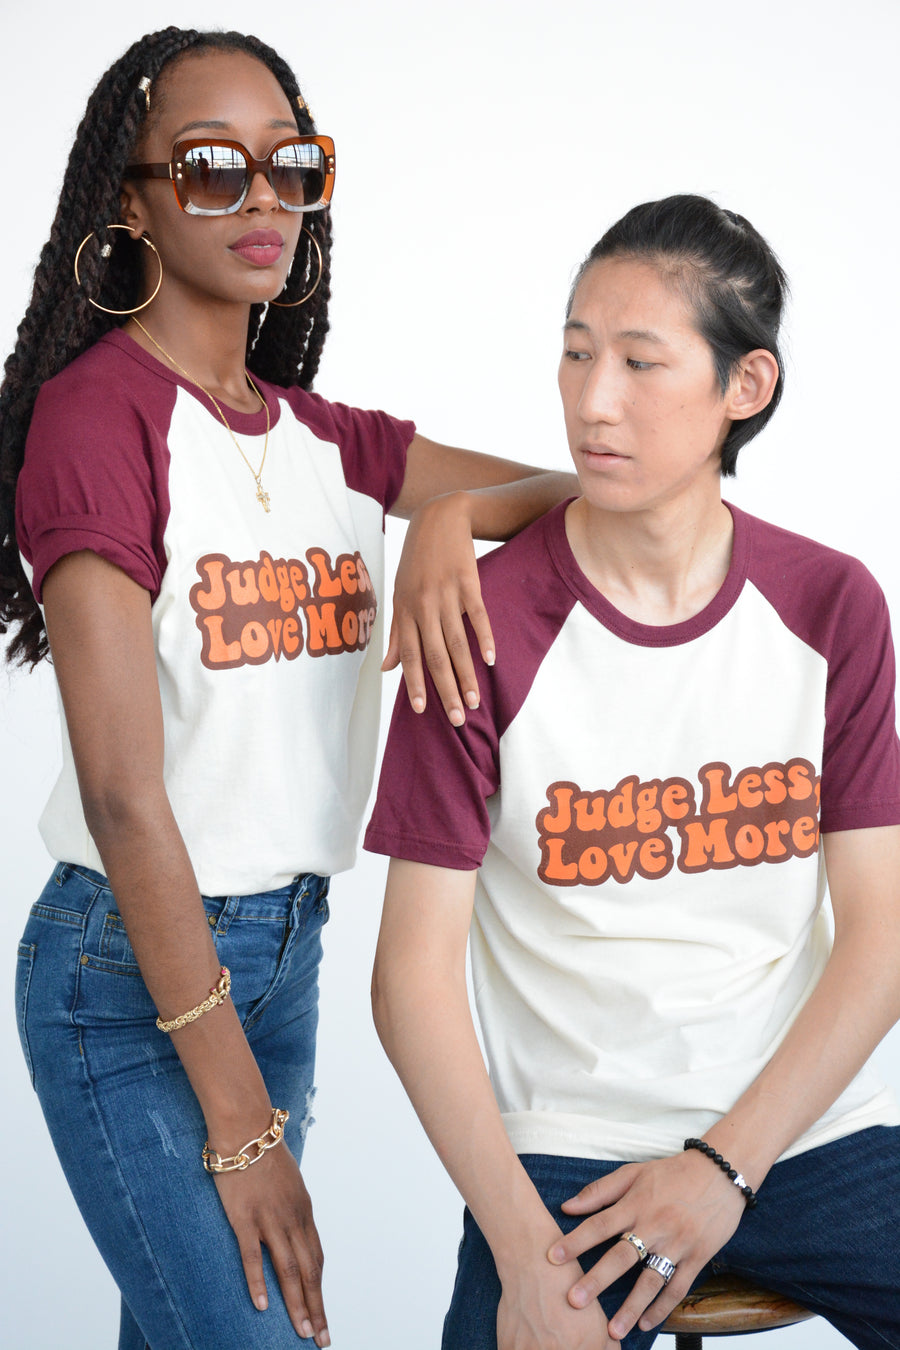 Judge Less, Love More. Retro Unisex Tee